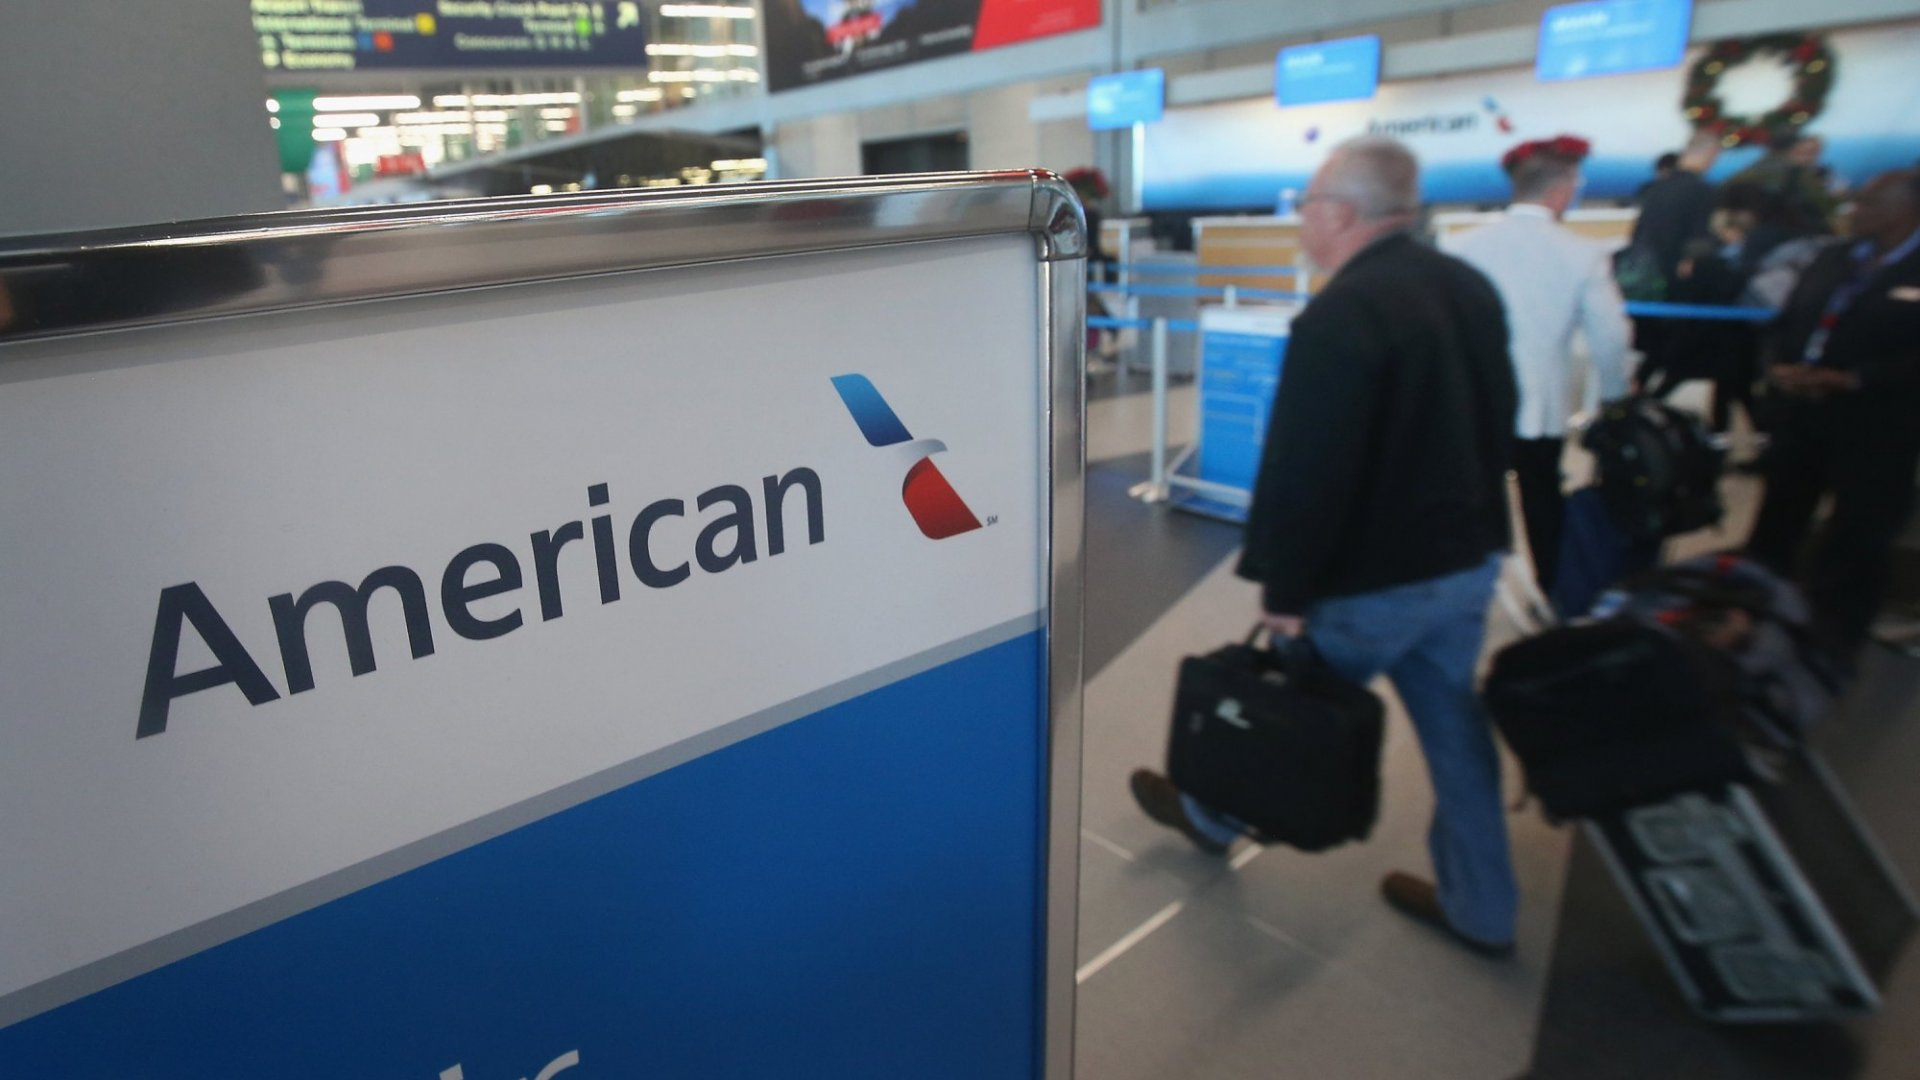 American Airlines Just Revealed the Way They Track Customers Who Complain Too Much